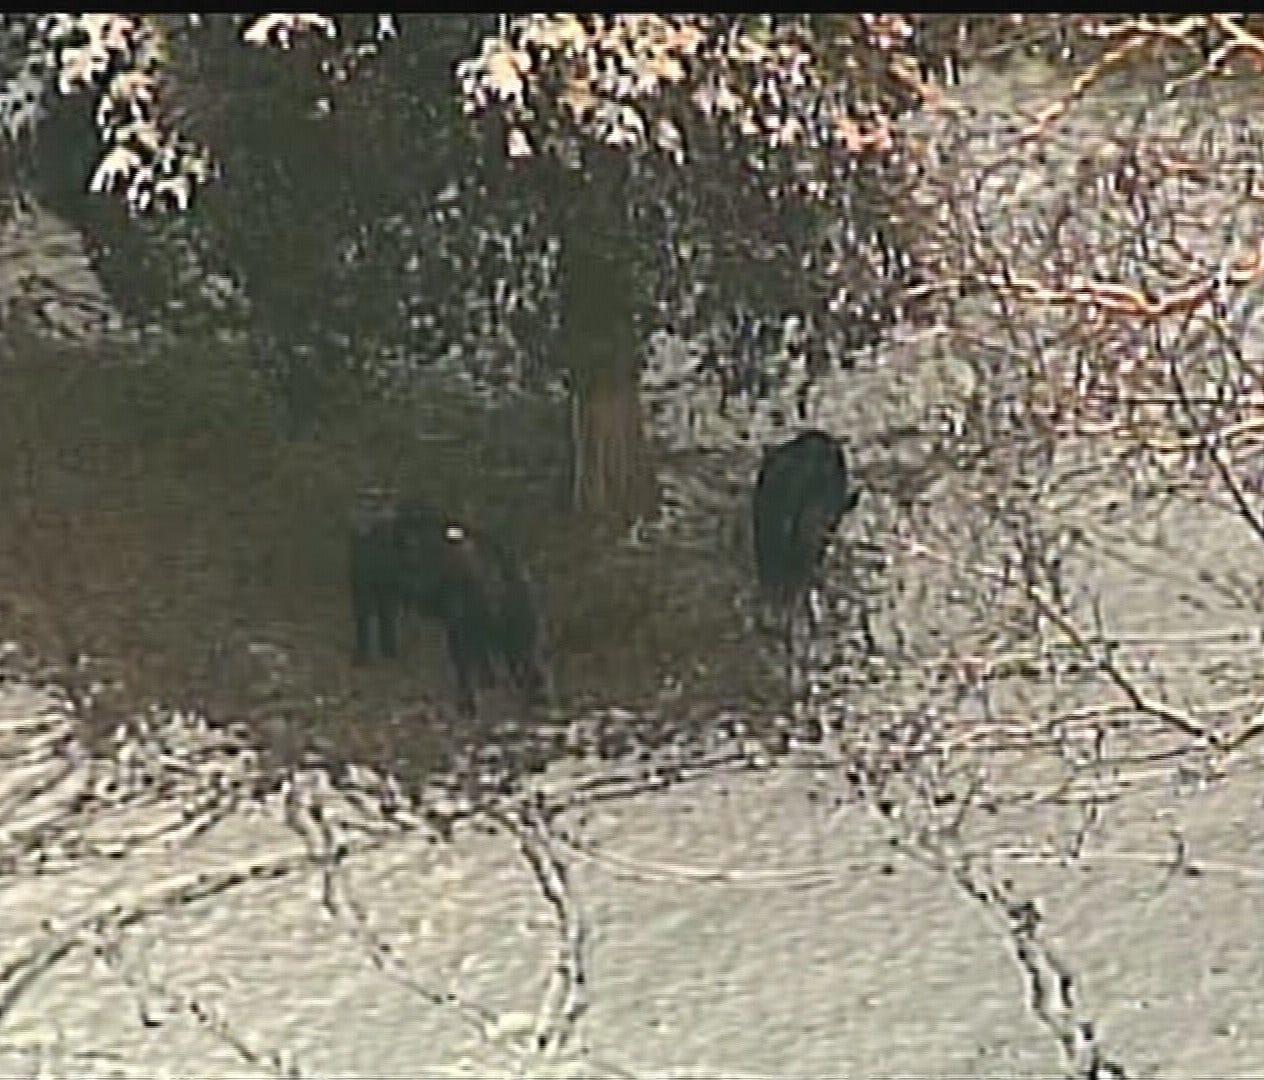 Crews work to round up cattle after truck overturns on I-64 | whas11 com